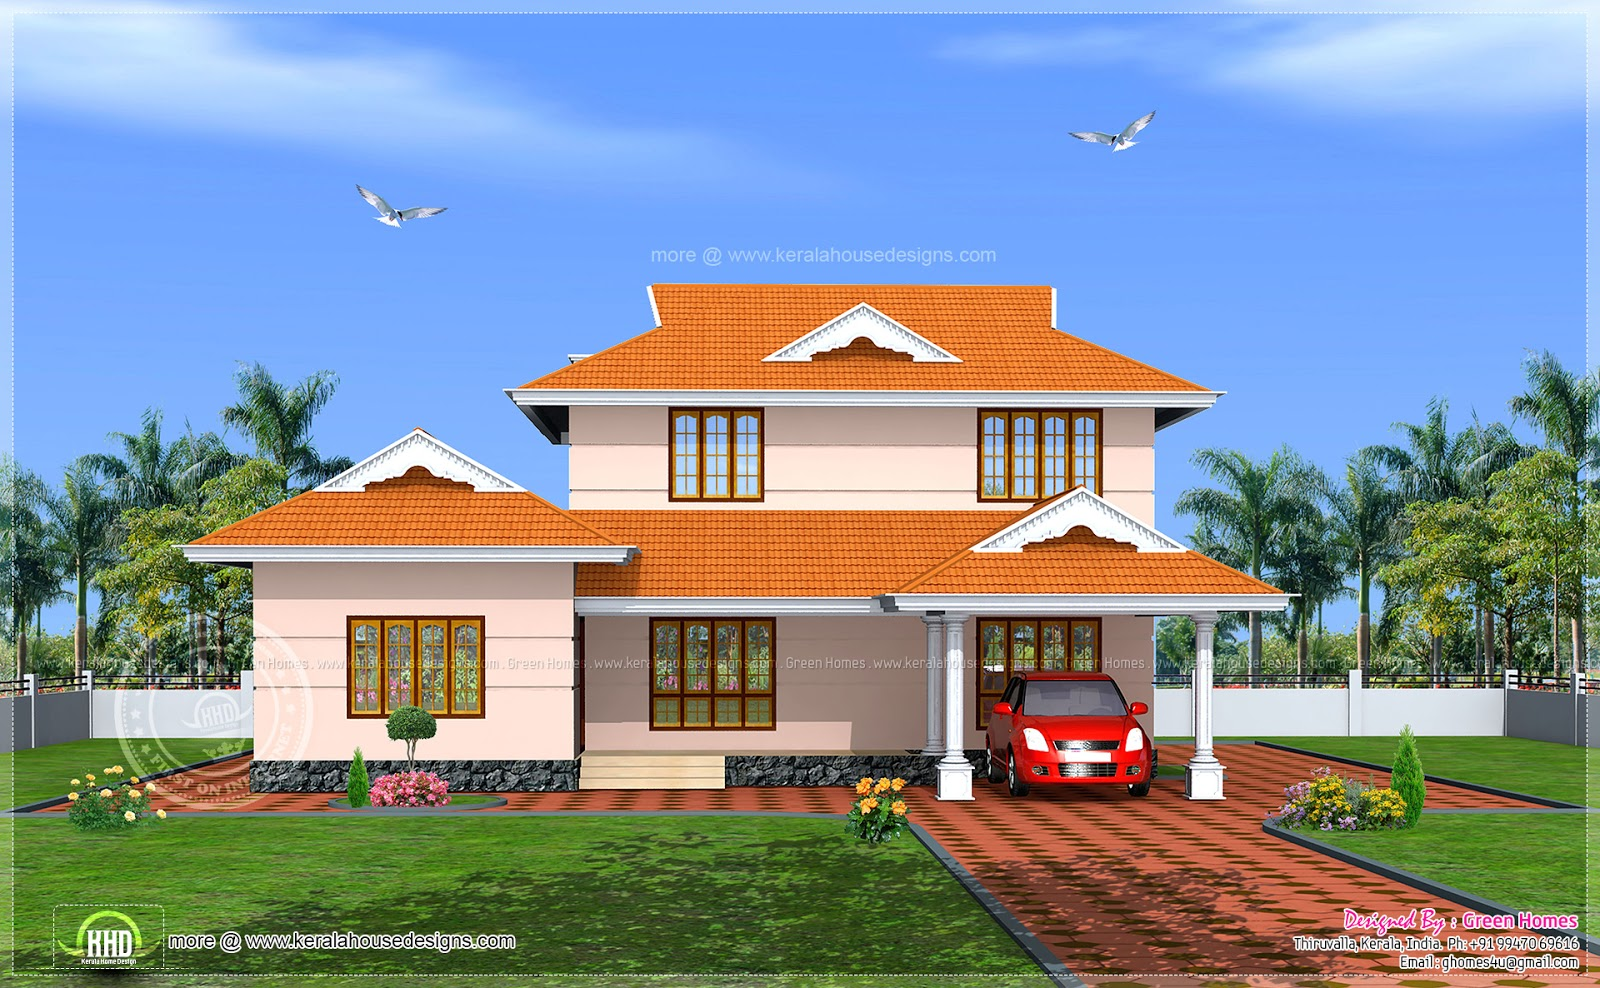 House plans and design house plans in kerala model with for Kerala house models and plans